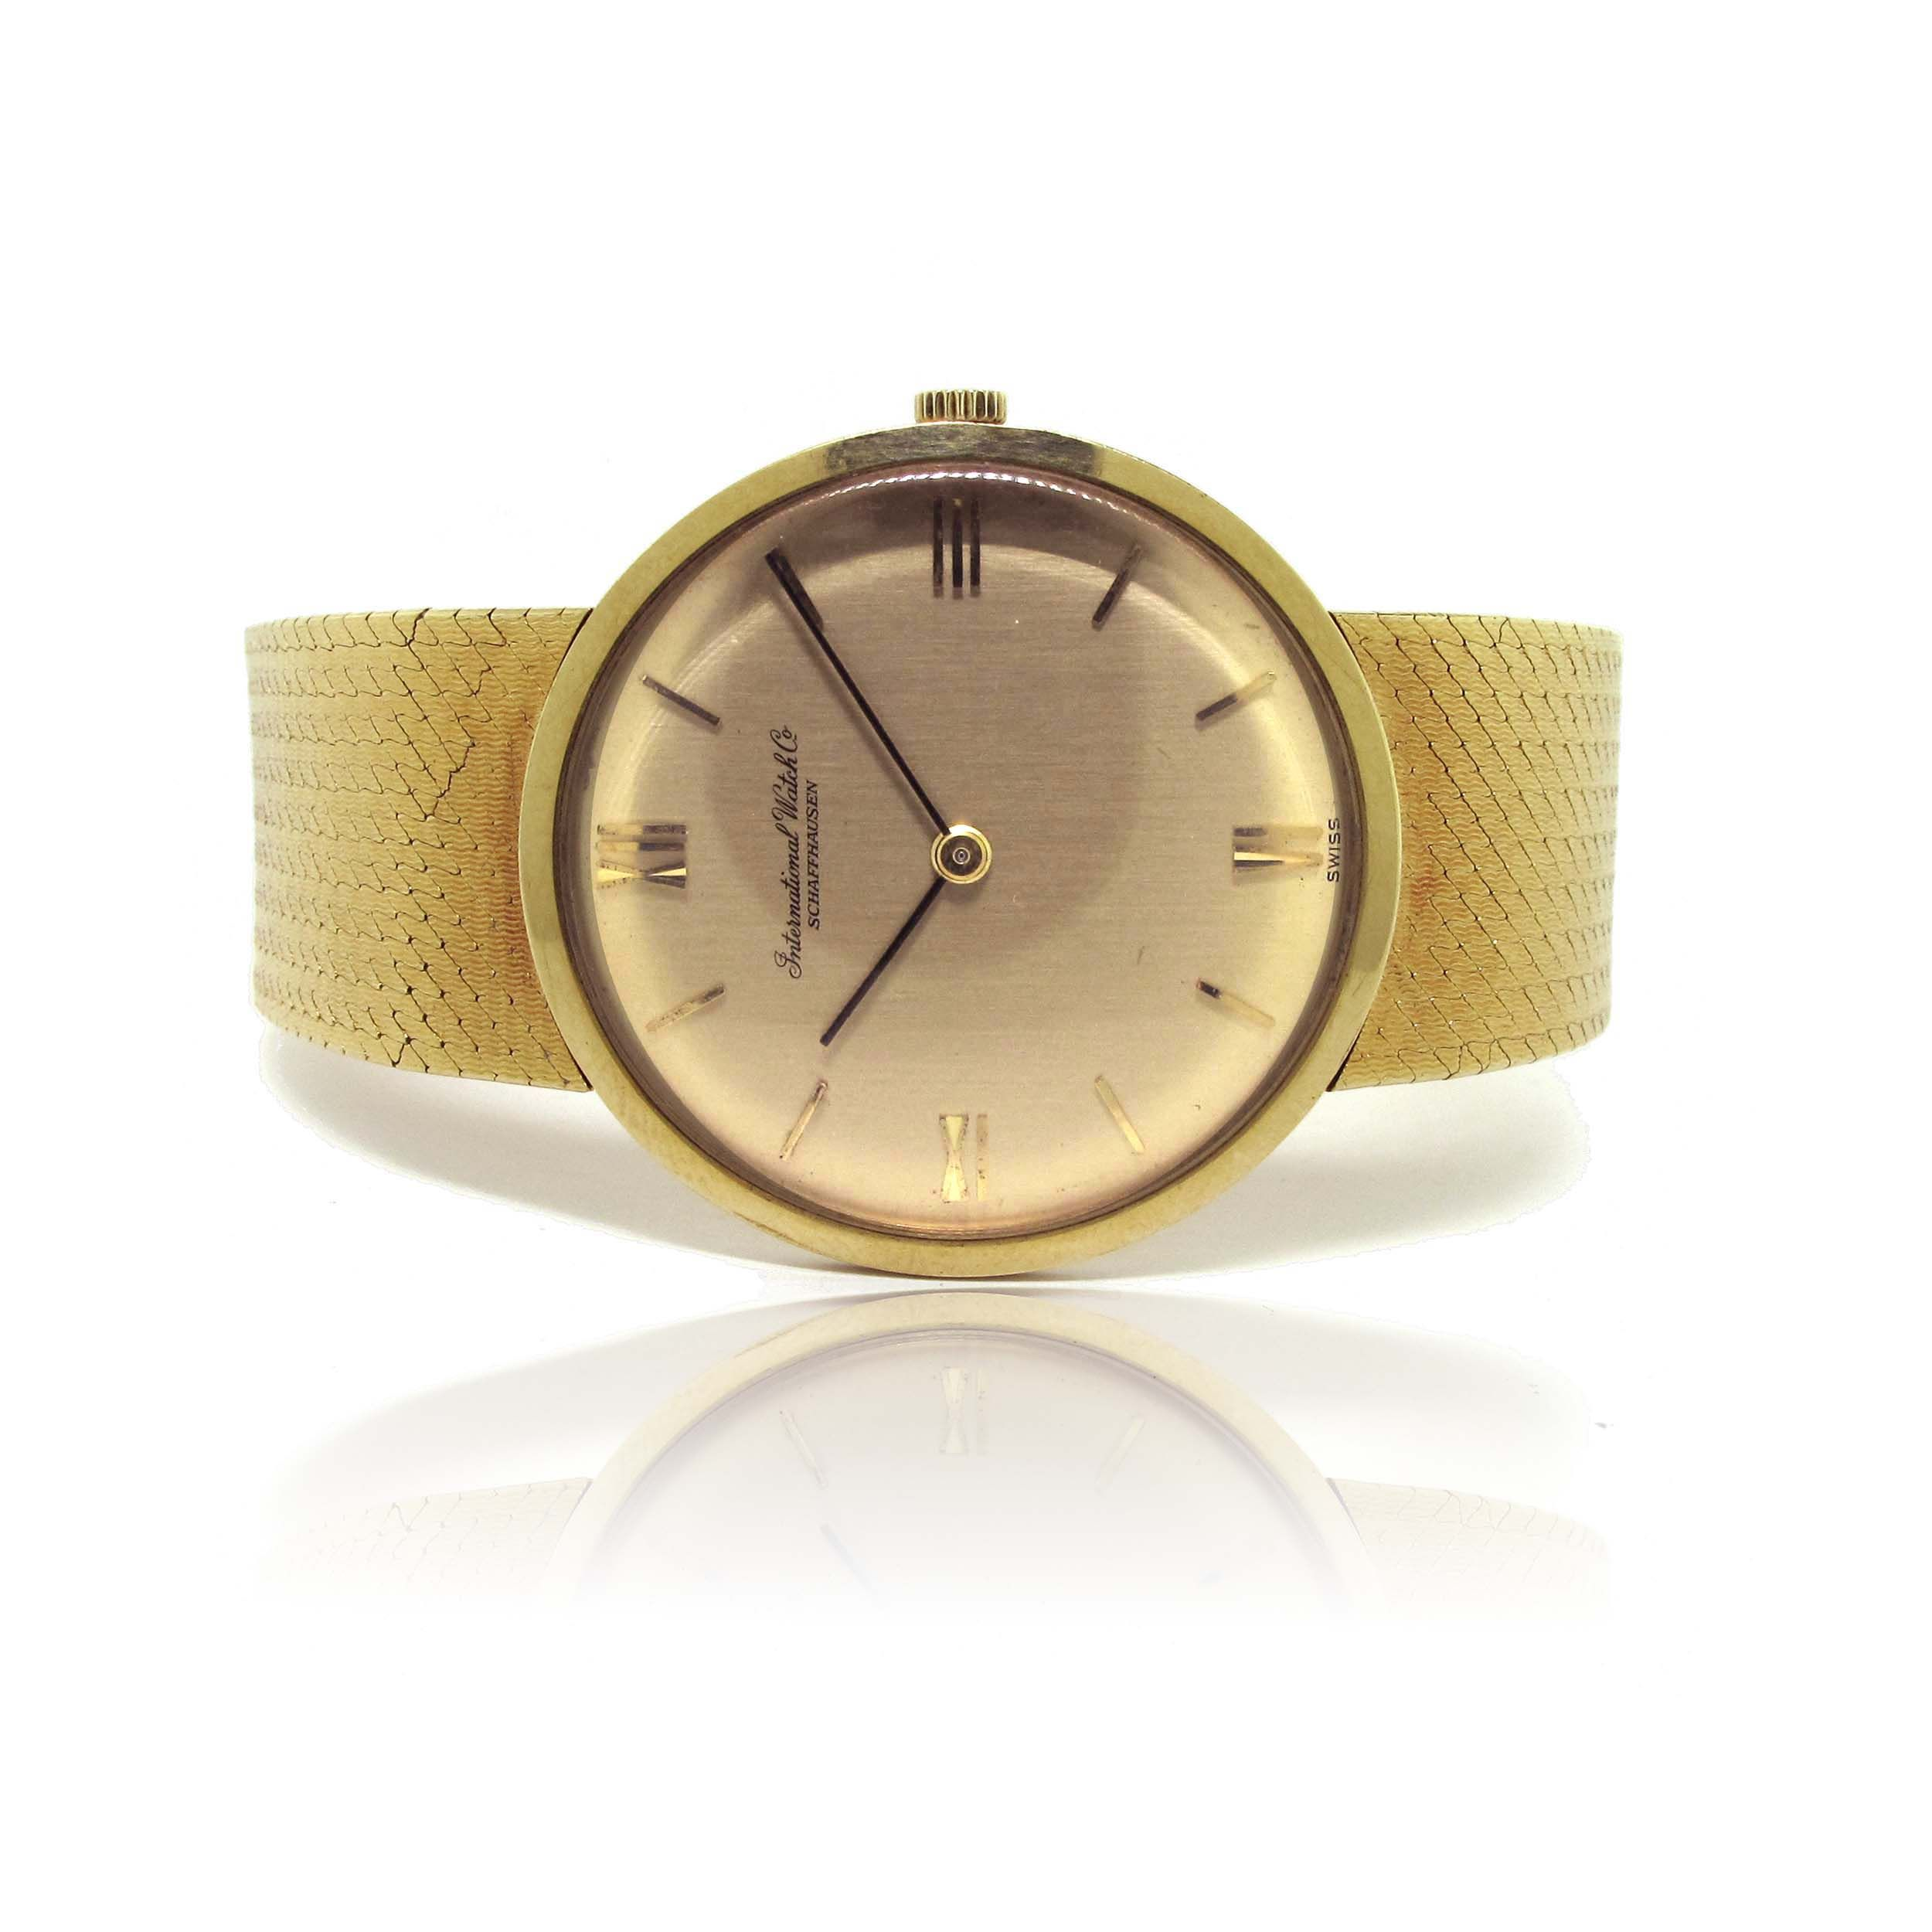 International Watch Company Vintage Ultra-Thin Watch sold at Francis Jewellers in Victoria BC